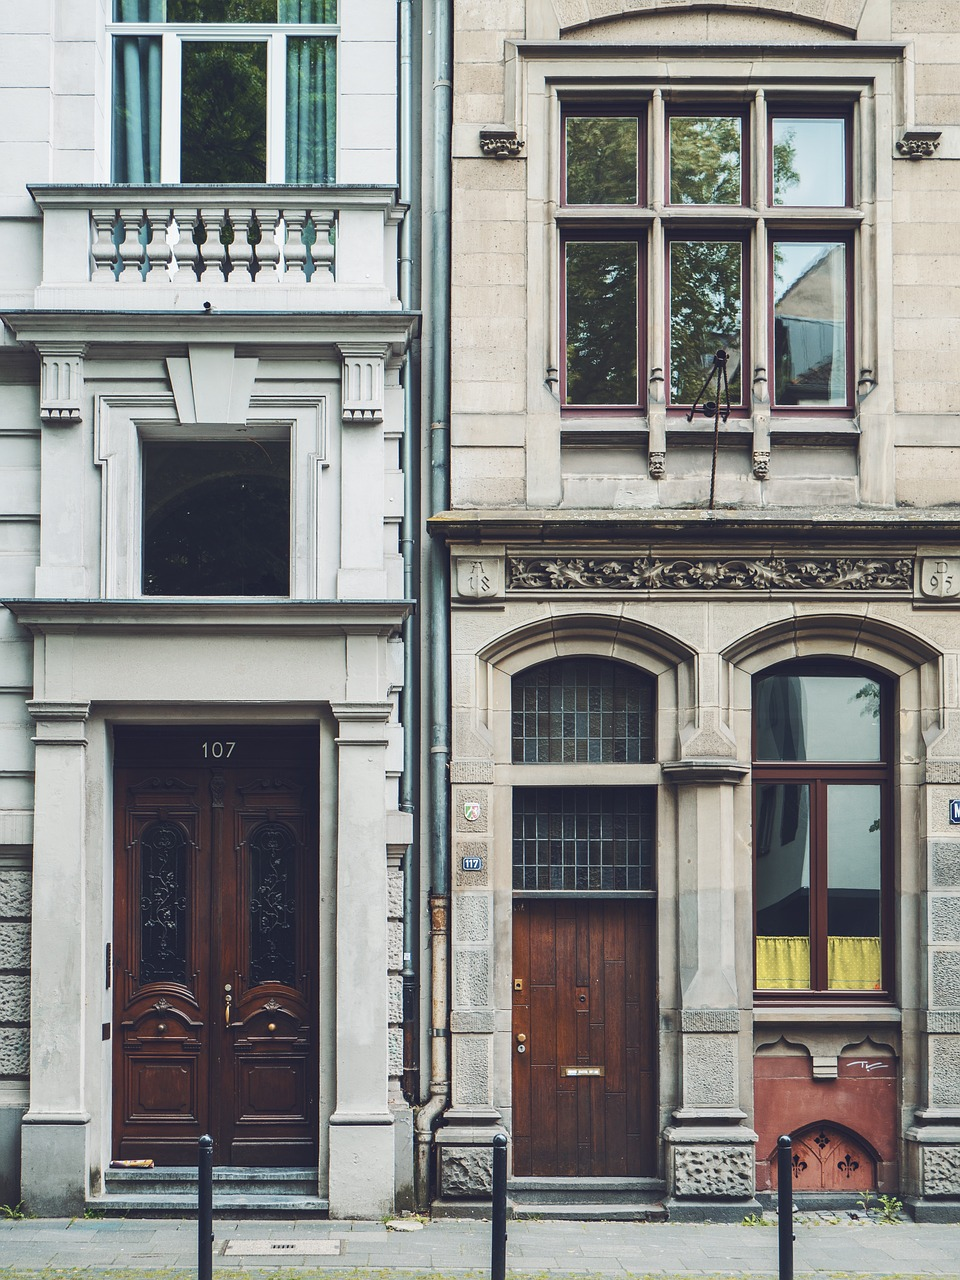 Charming apartment entrance, view from the street